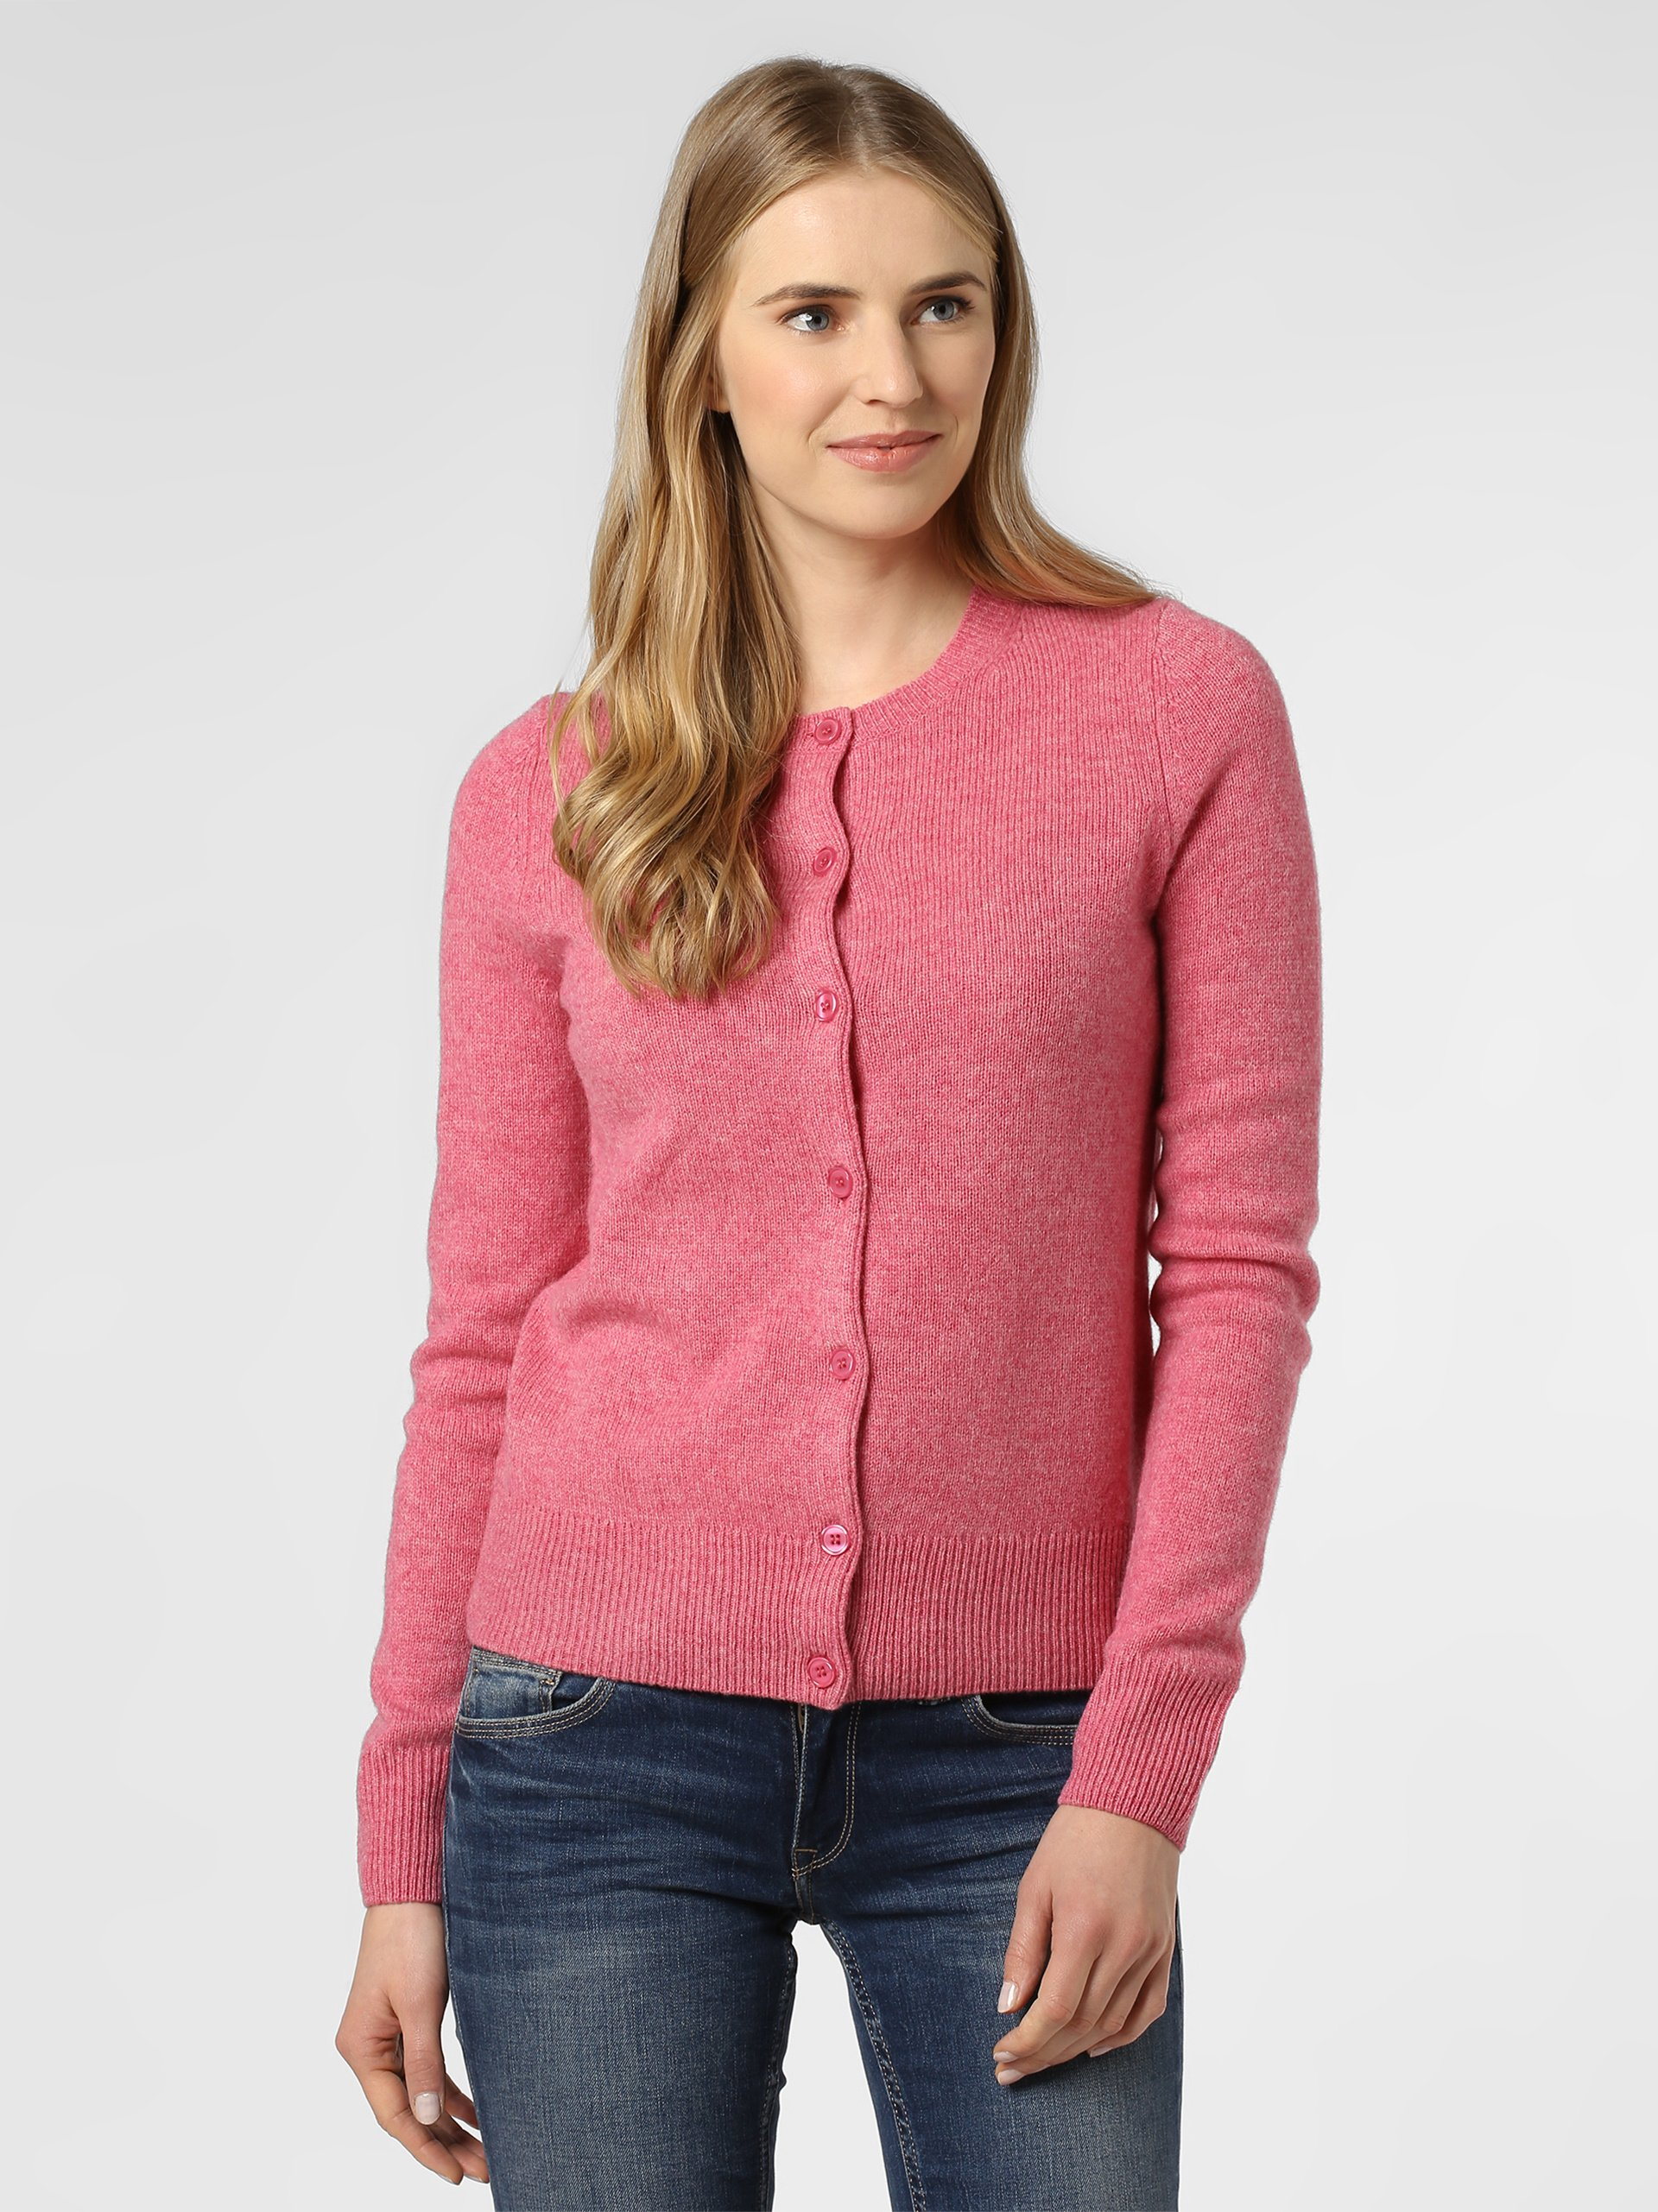 brookshire Damen Strickjacke